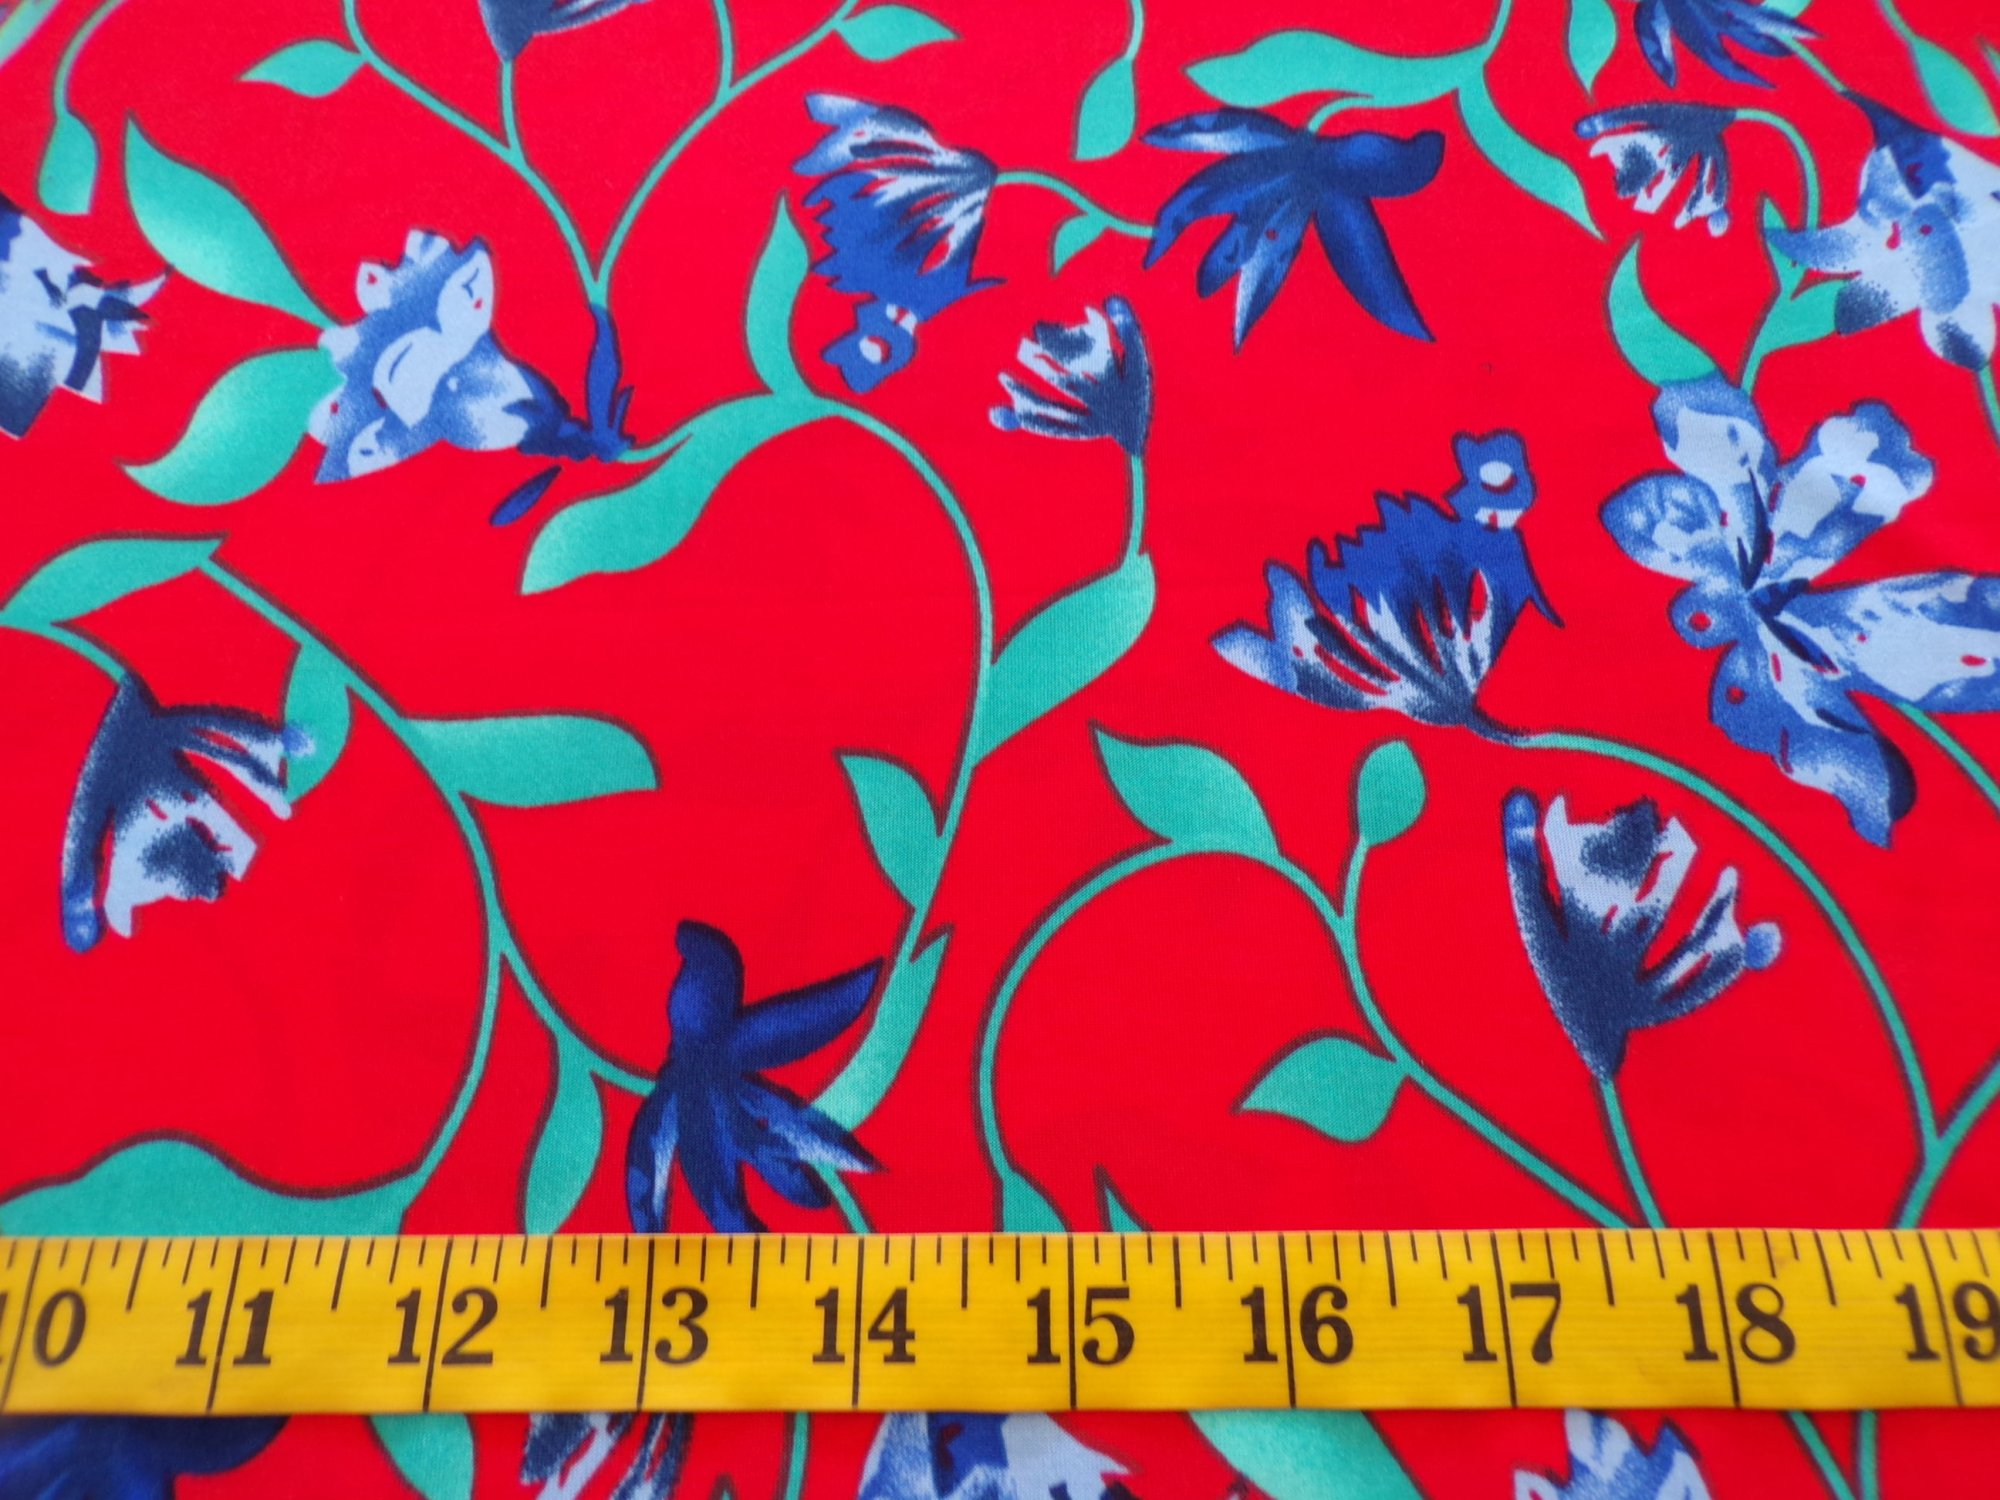 ITY Jersey - Red Blue and Green Floral